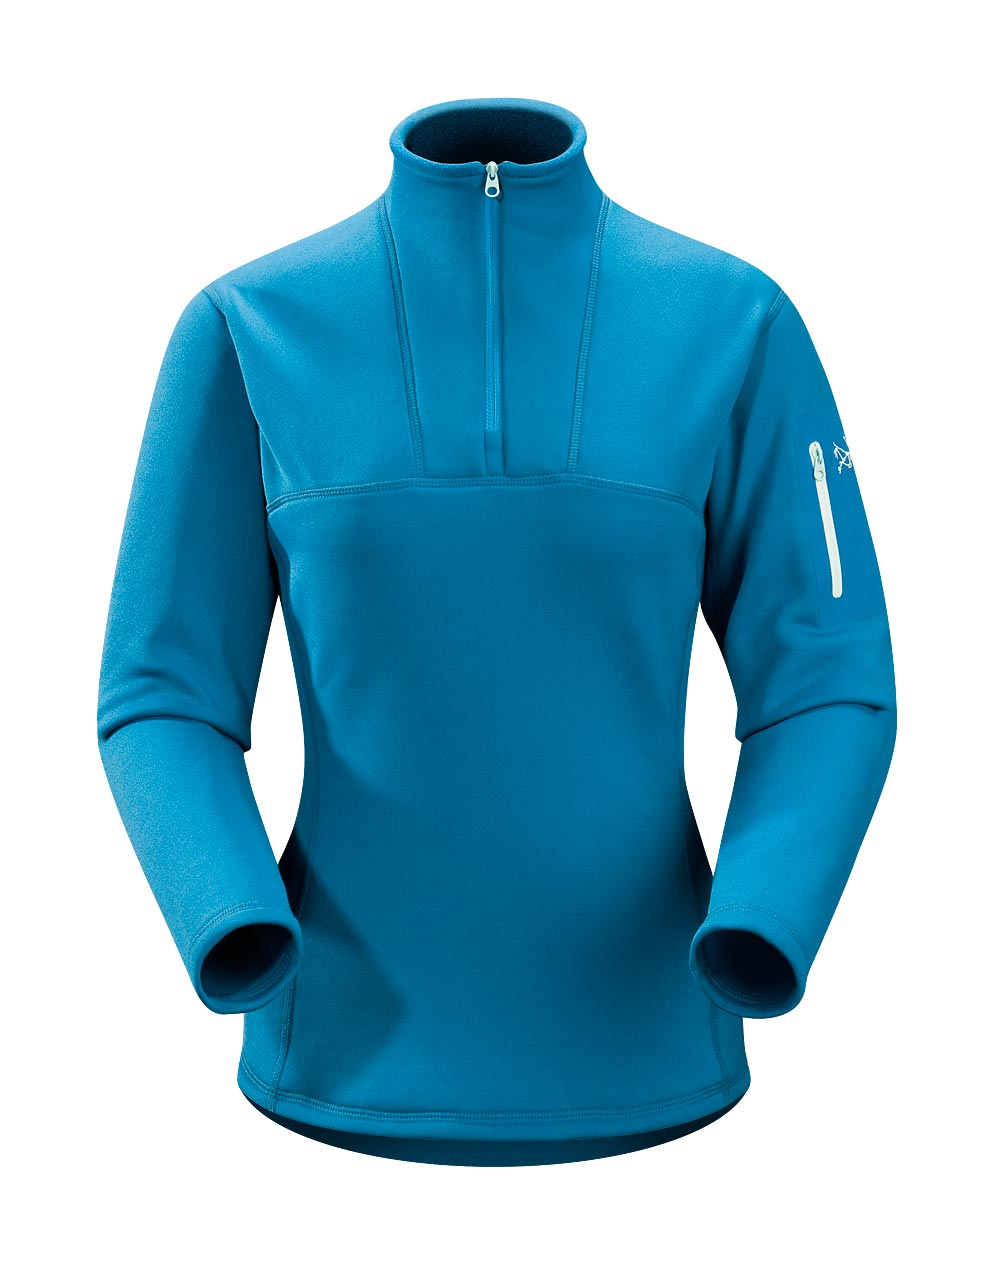 Arcteryx Bondi Blue Rho AR Top